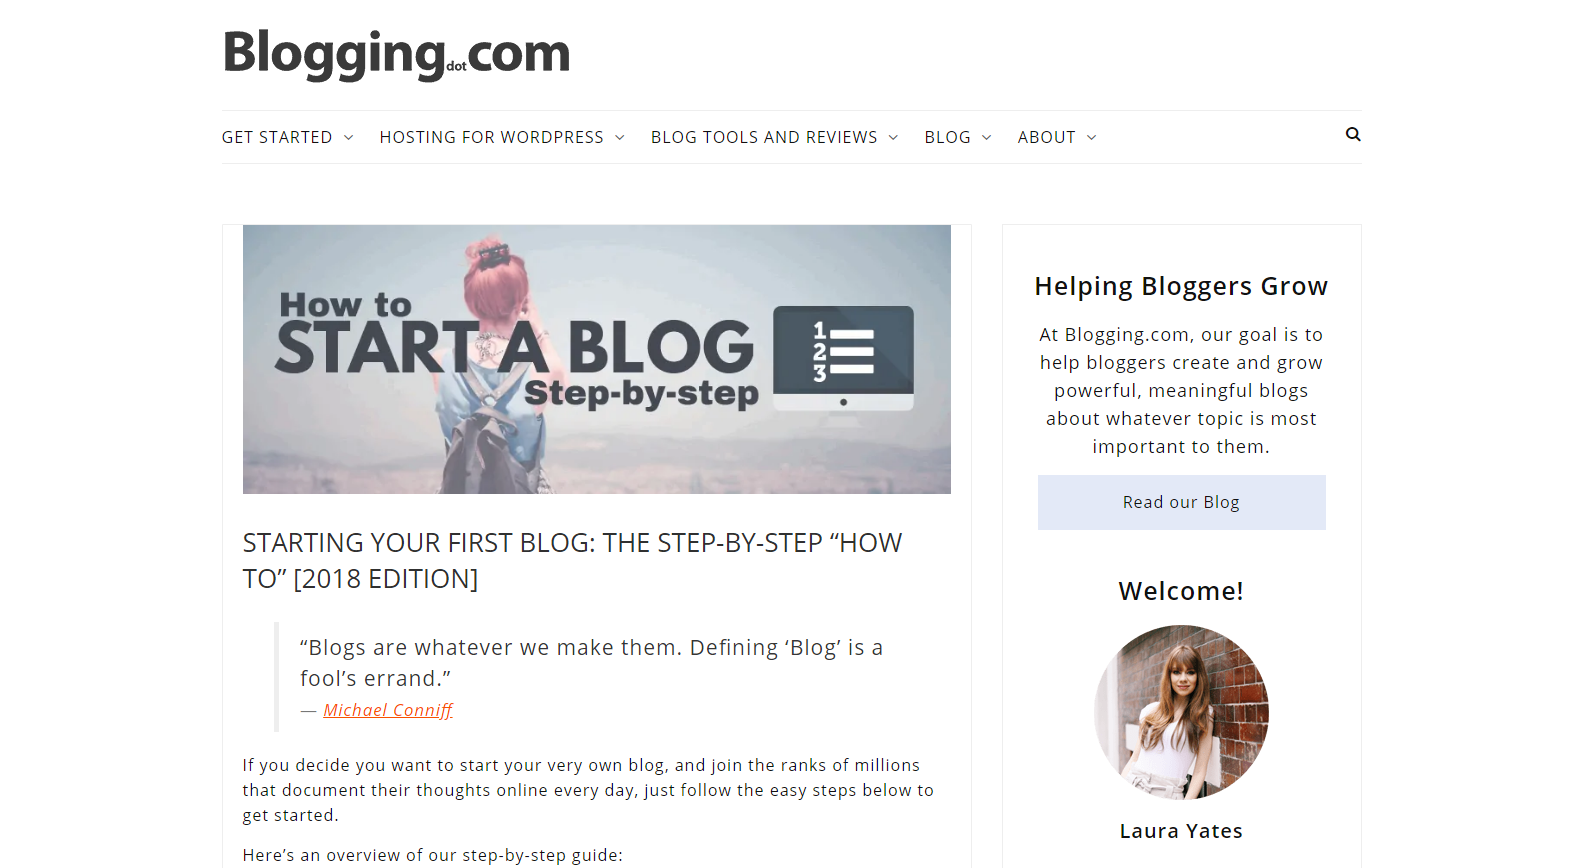 blogging.com current design